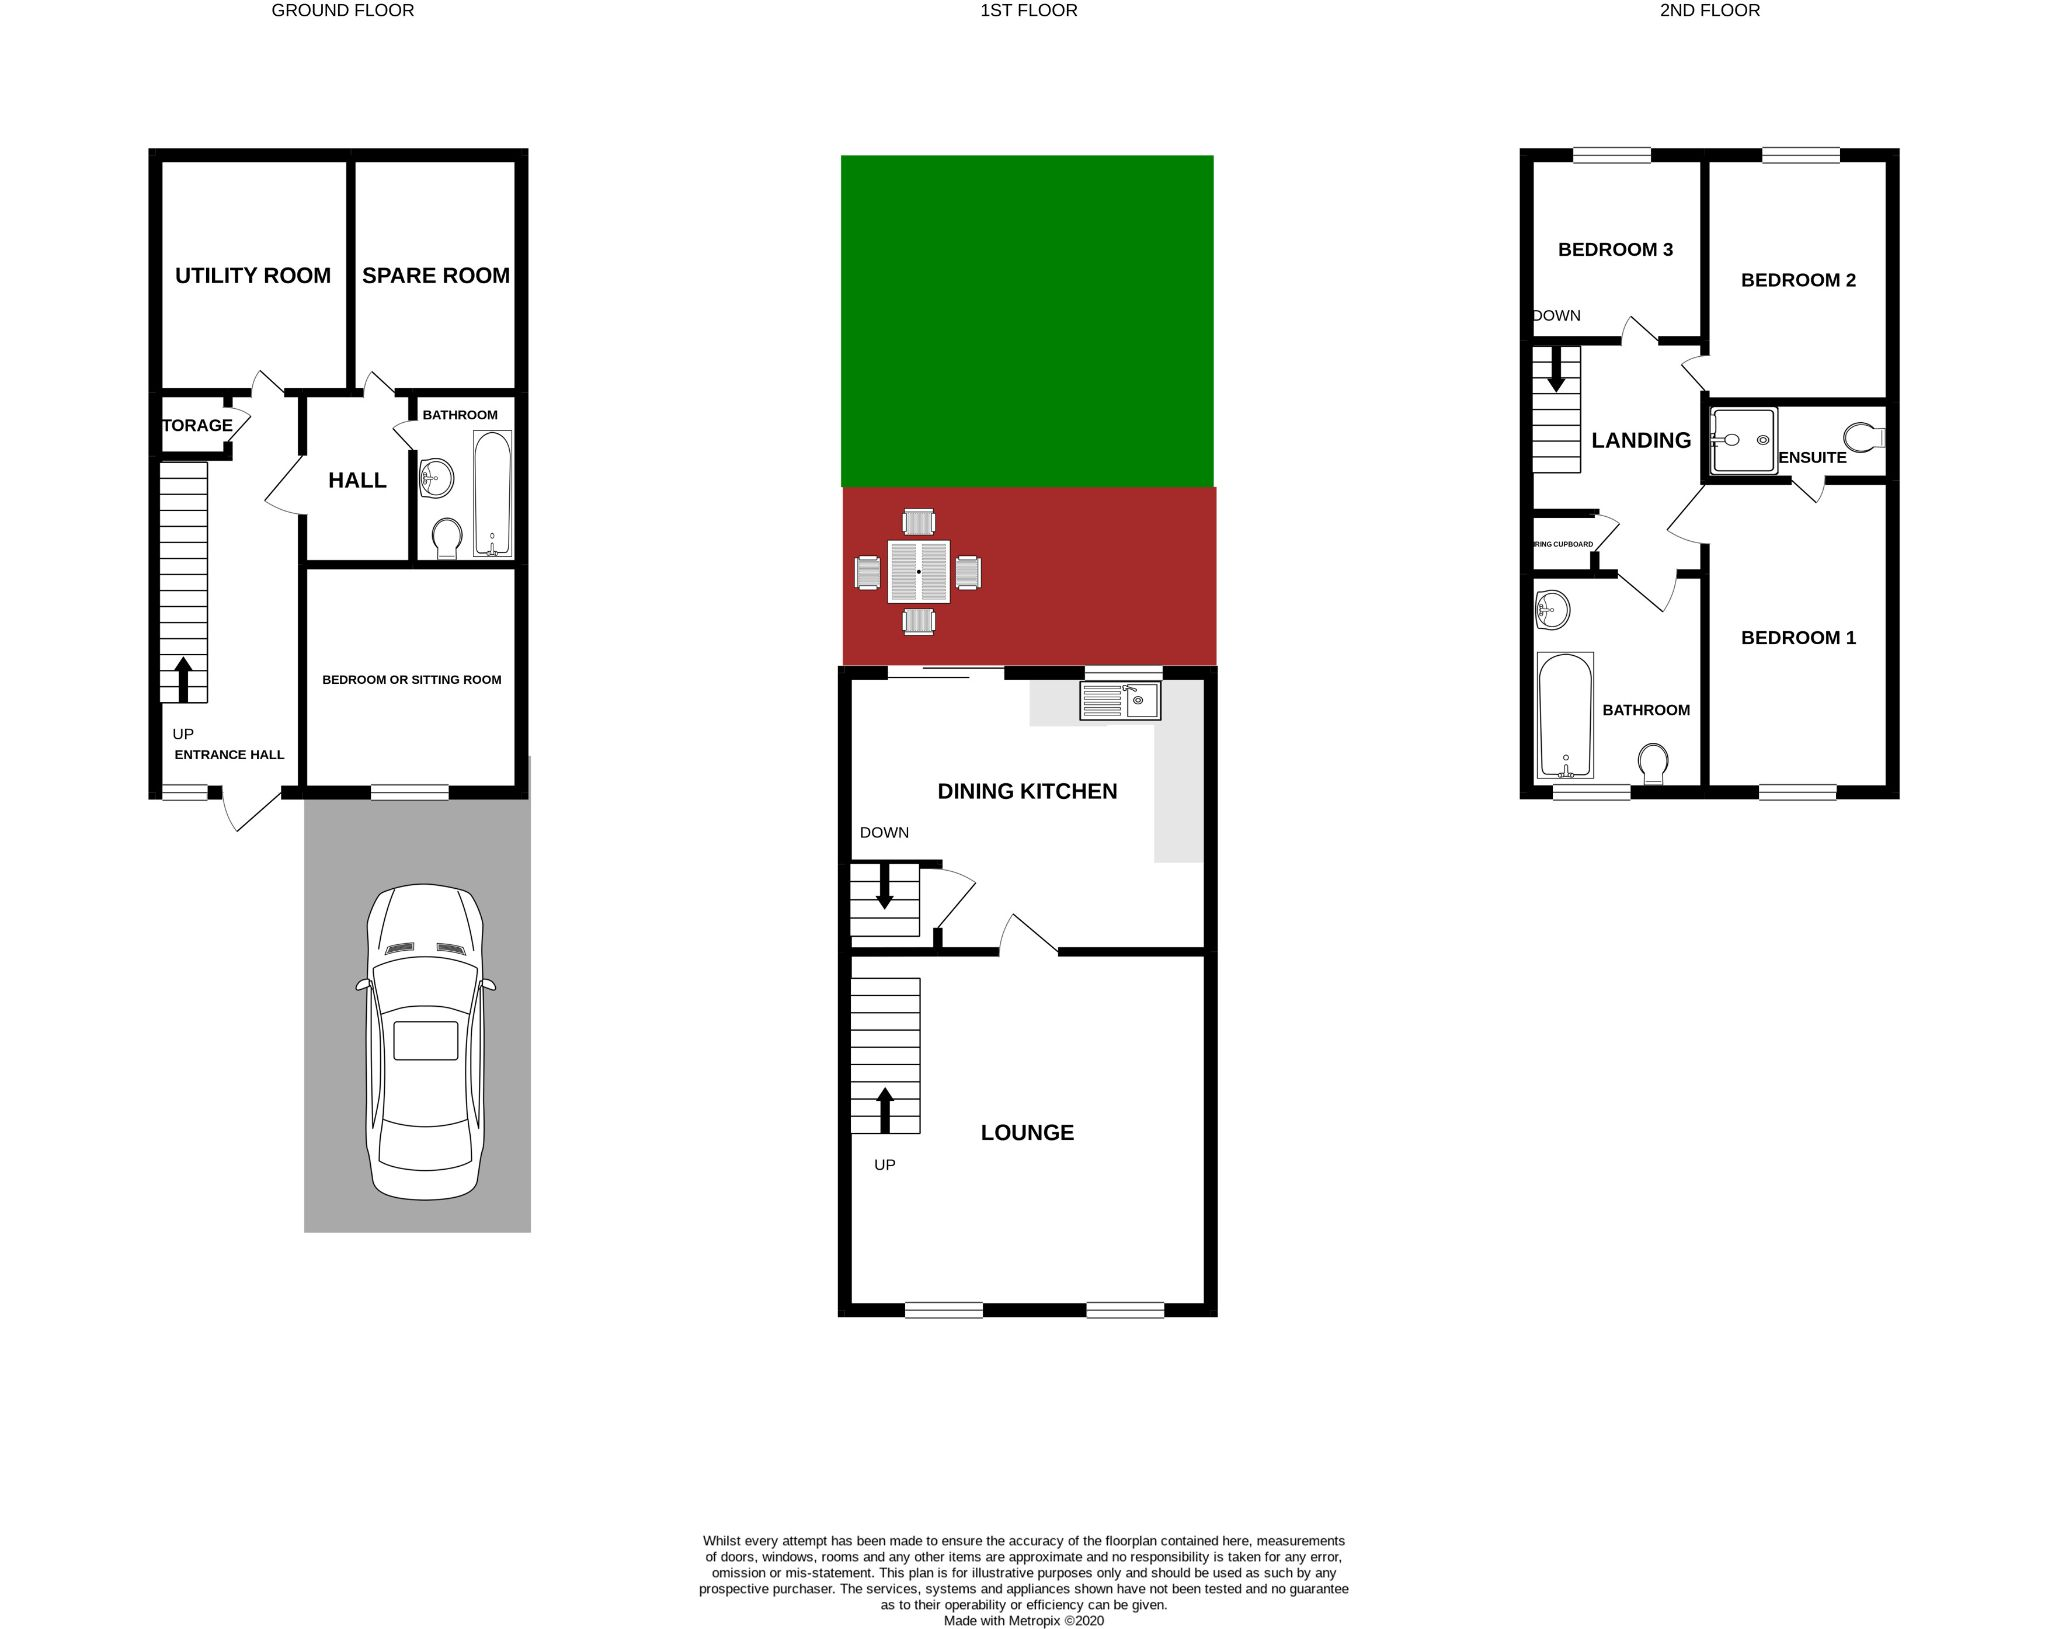 4 bedroom town house For Sale in Brighouse - Floorplan 1.